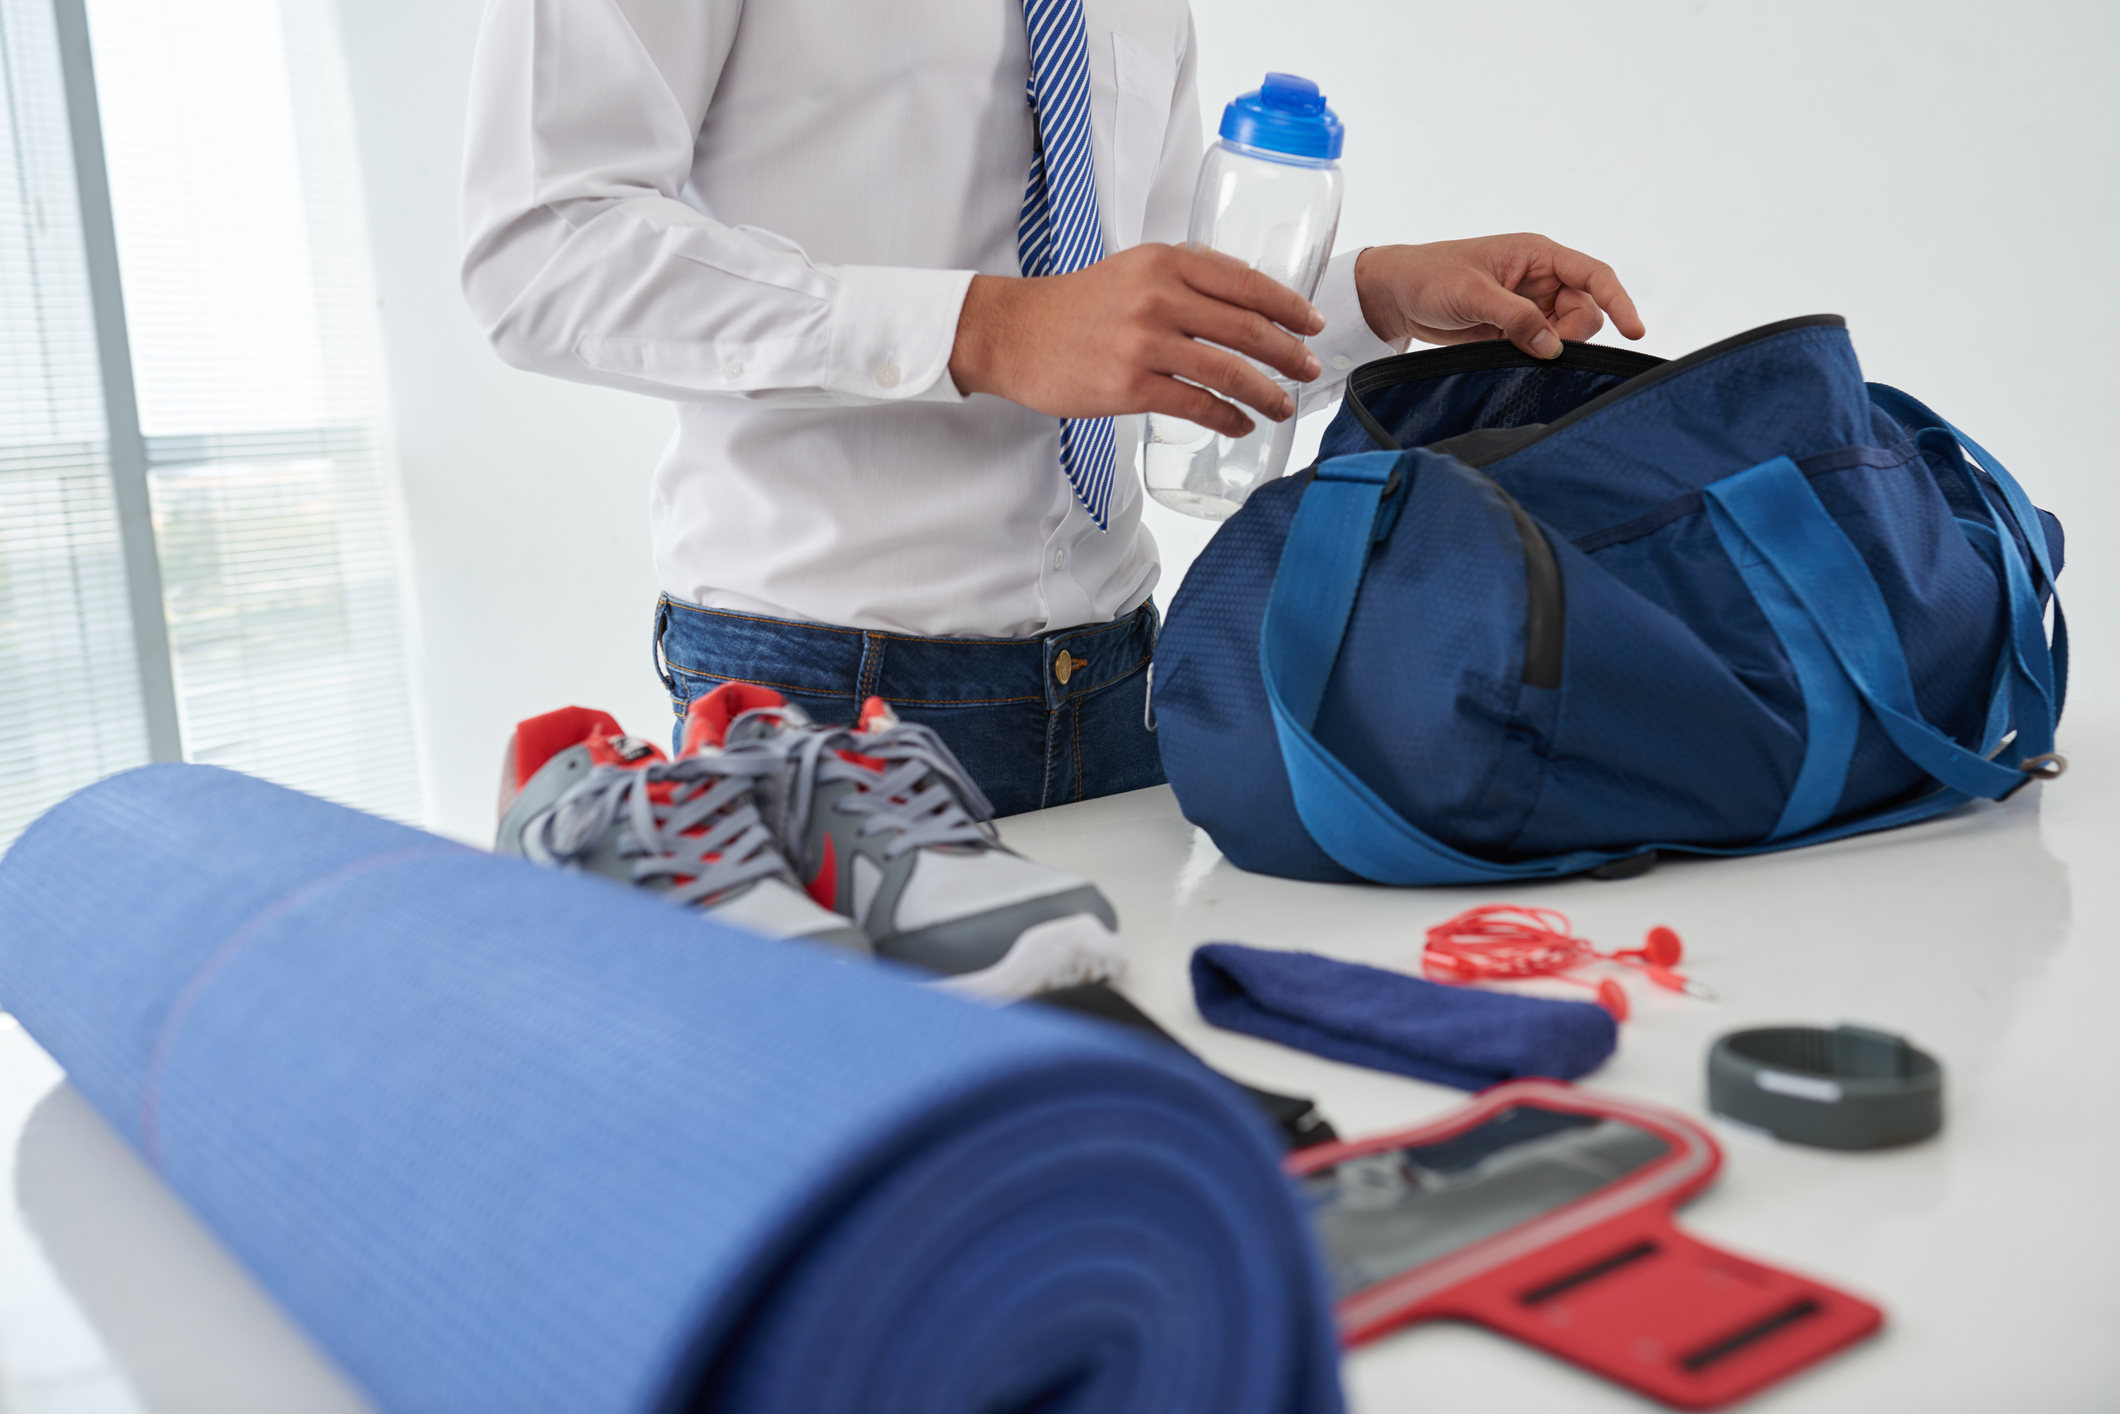 Man putting workout gear into gym bag at work